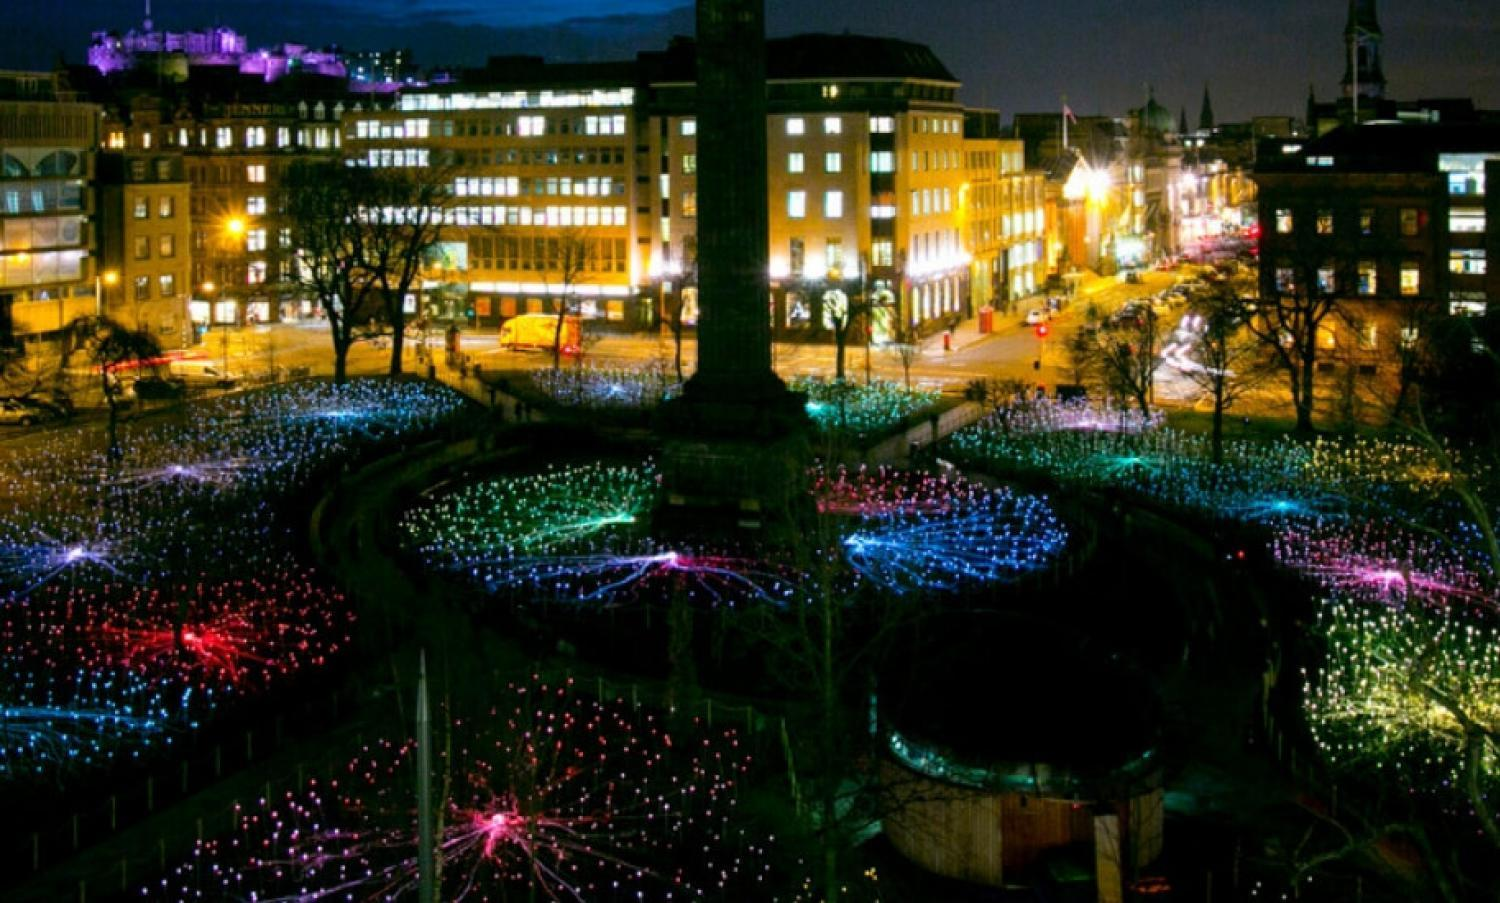 Field of Light installation by Bruce Munro in St Andrew Square Garden